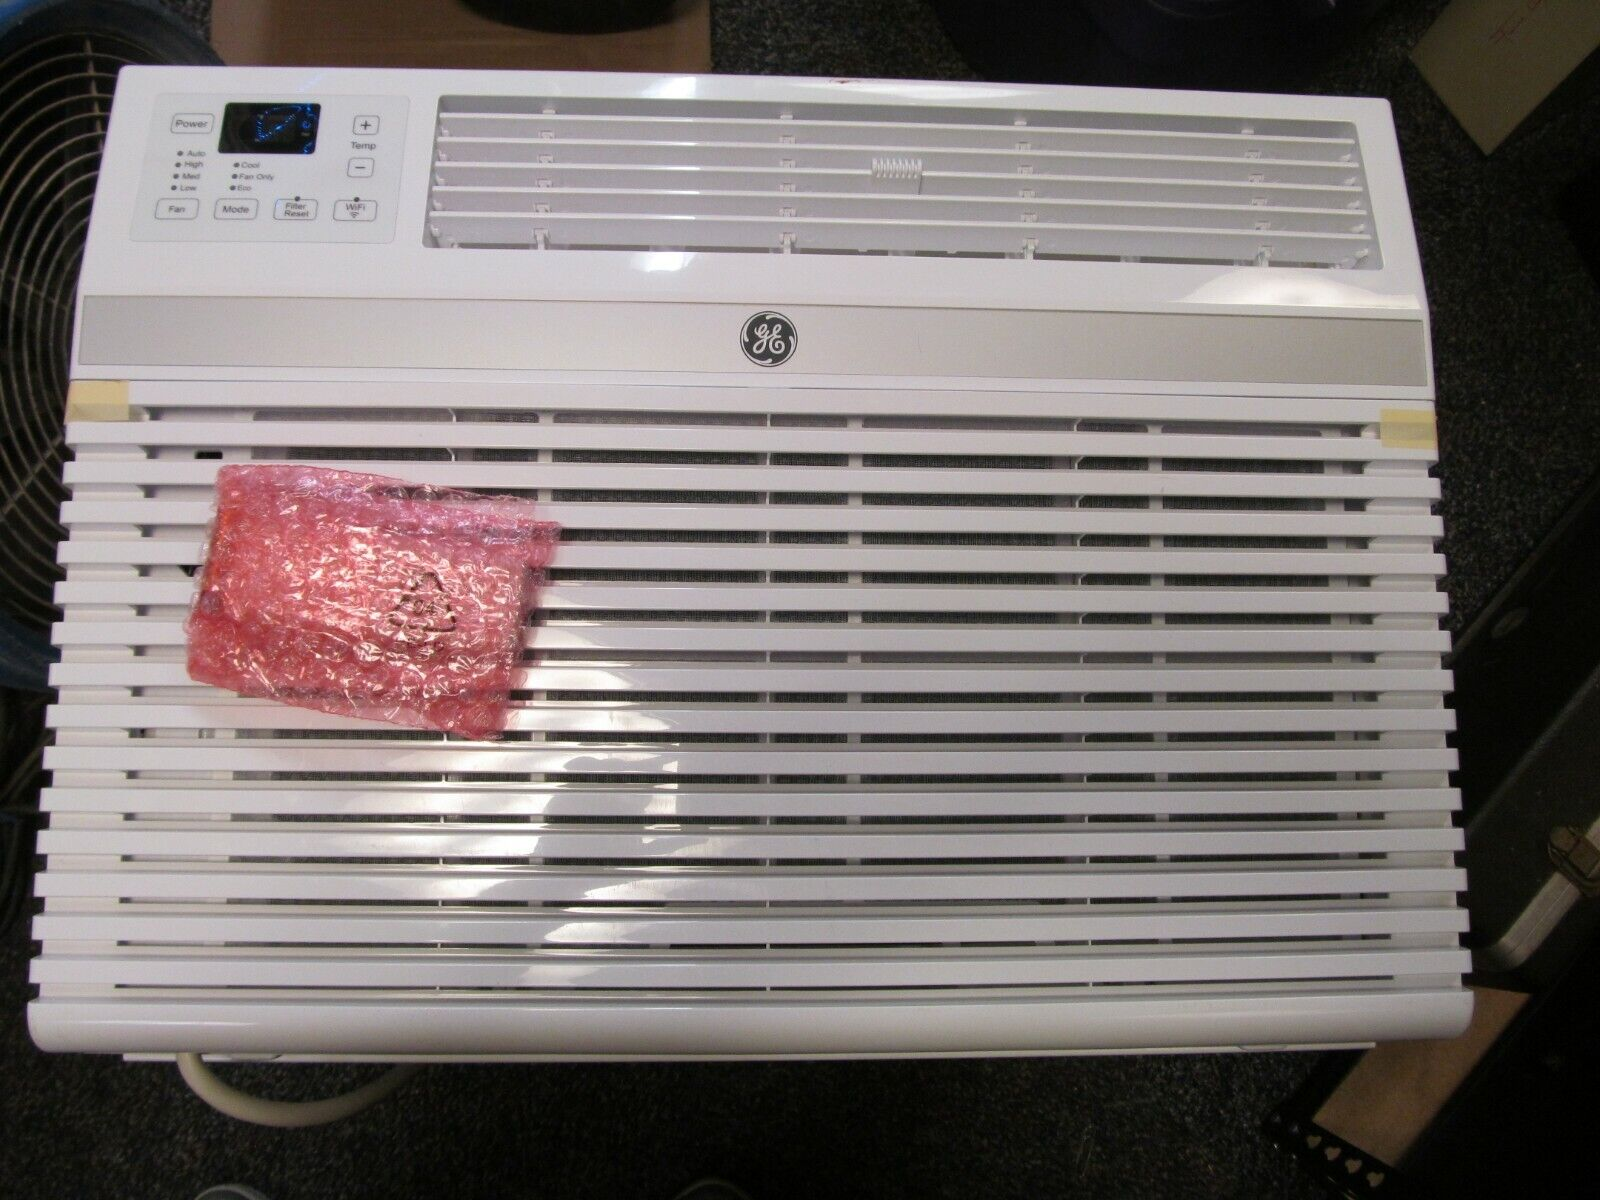 GE Room Air Conditioner AEC12AYL1 Smart AC w/ Wifi & Remote